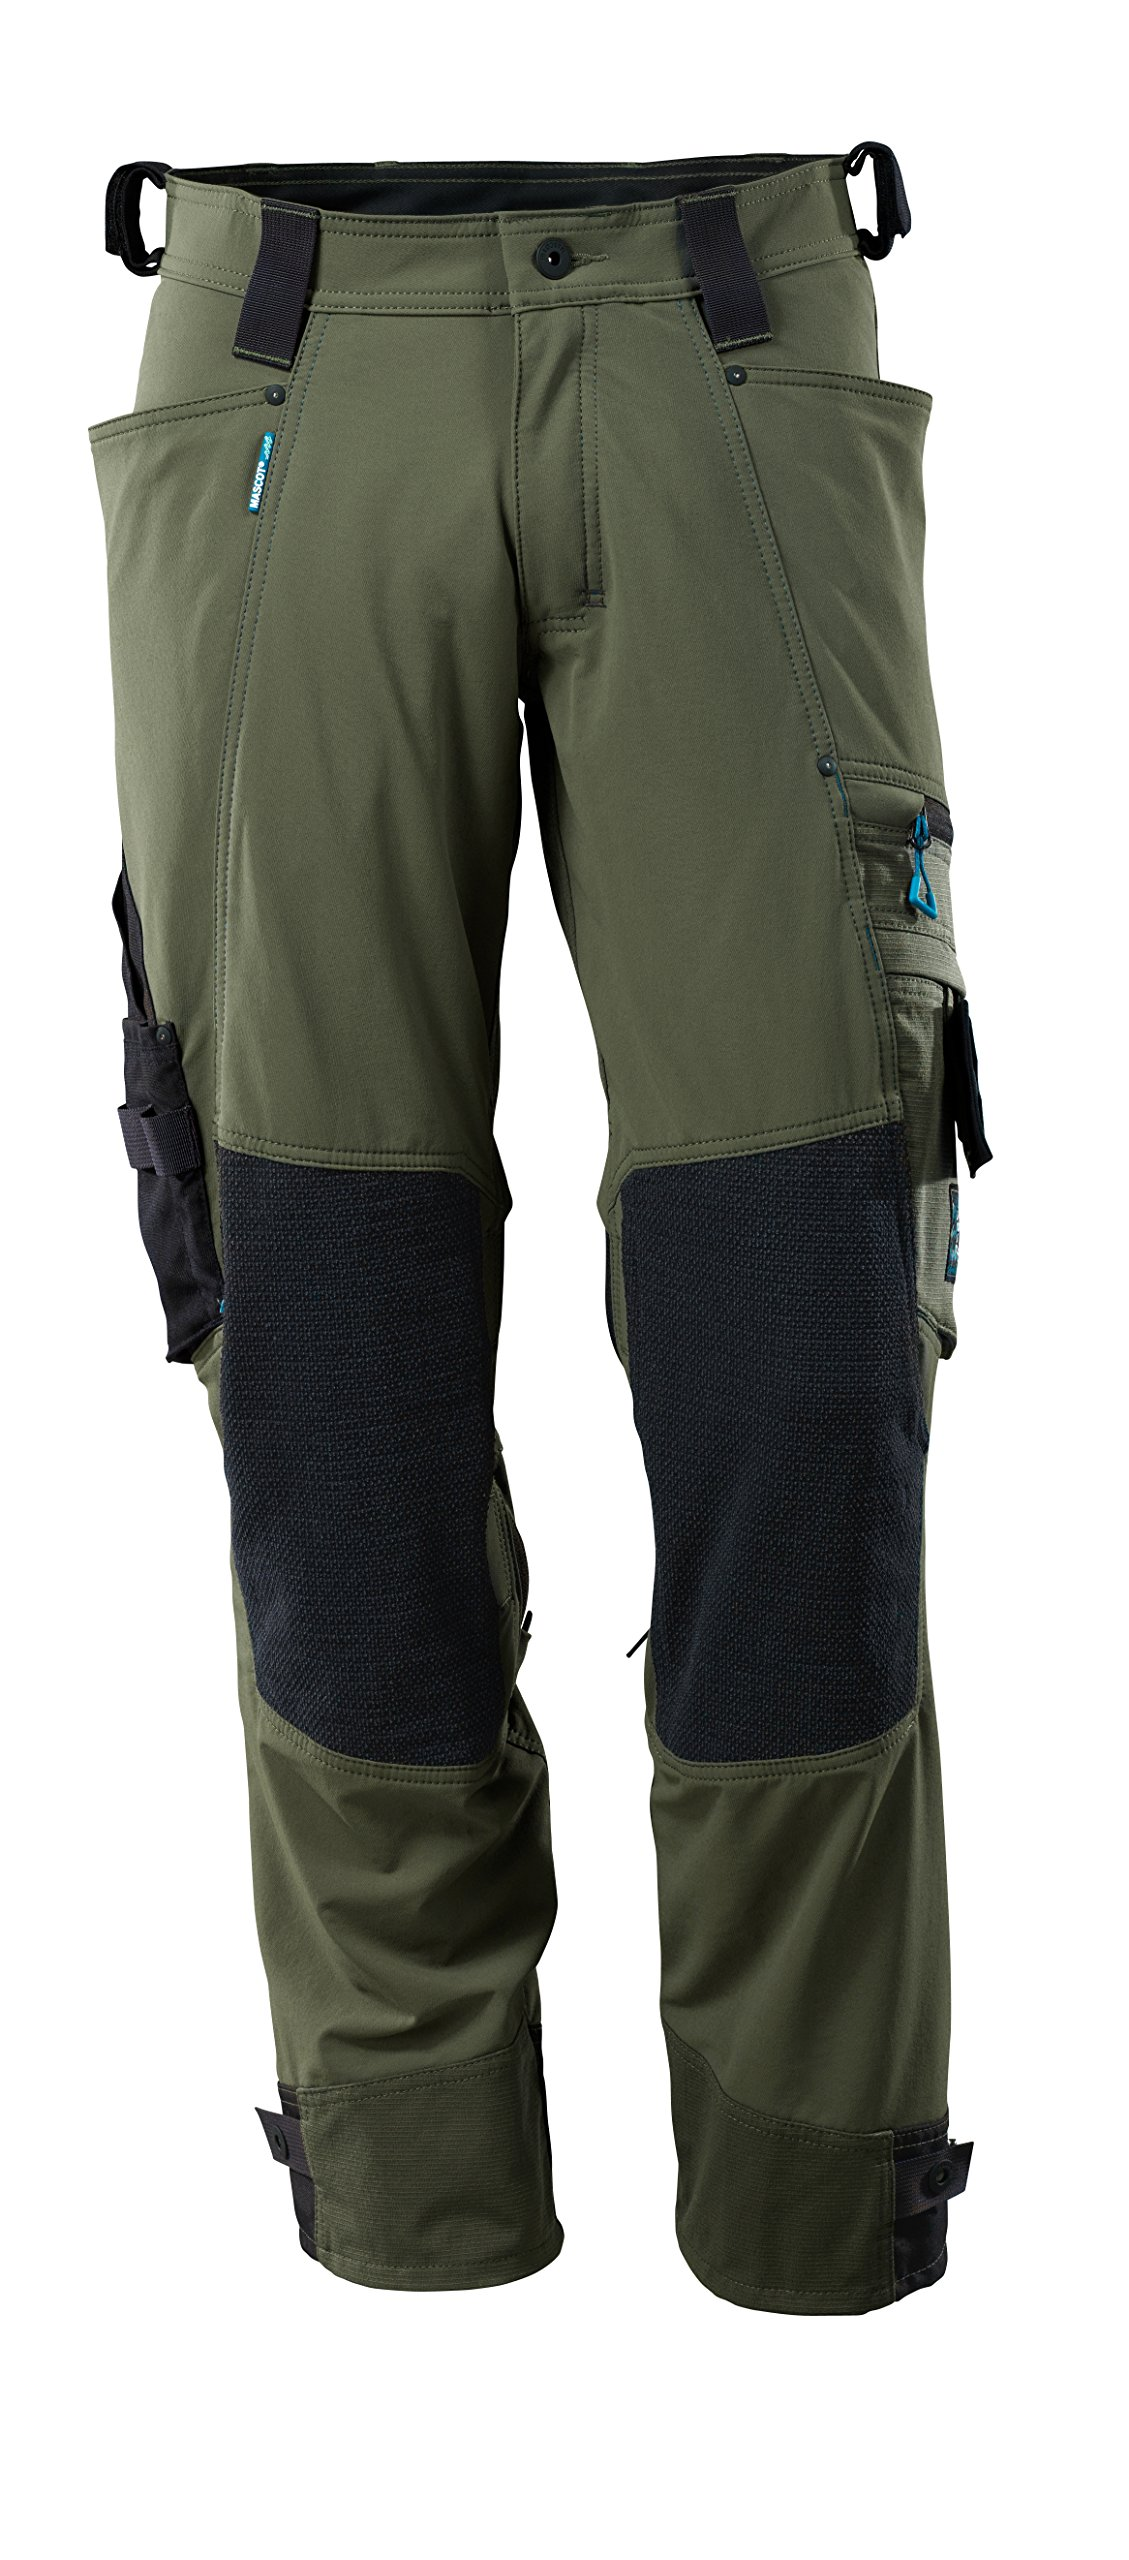 Mascot 17079-311-33-82C48 Trousers Safety Pants, Moss Green, 82C48